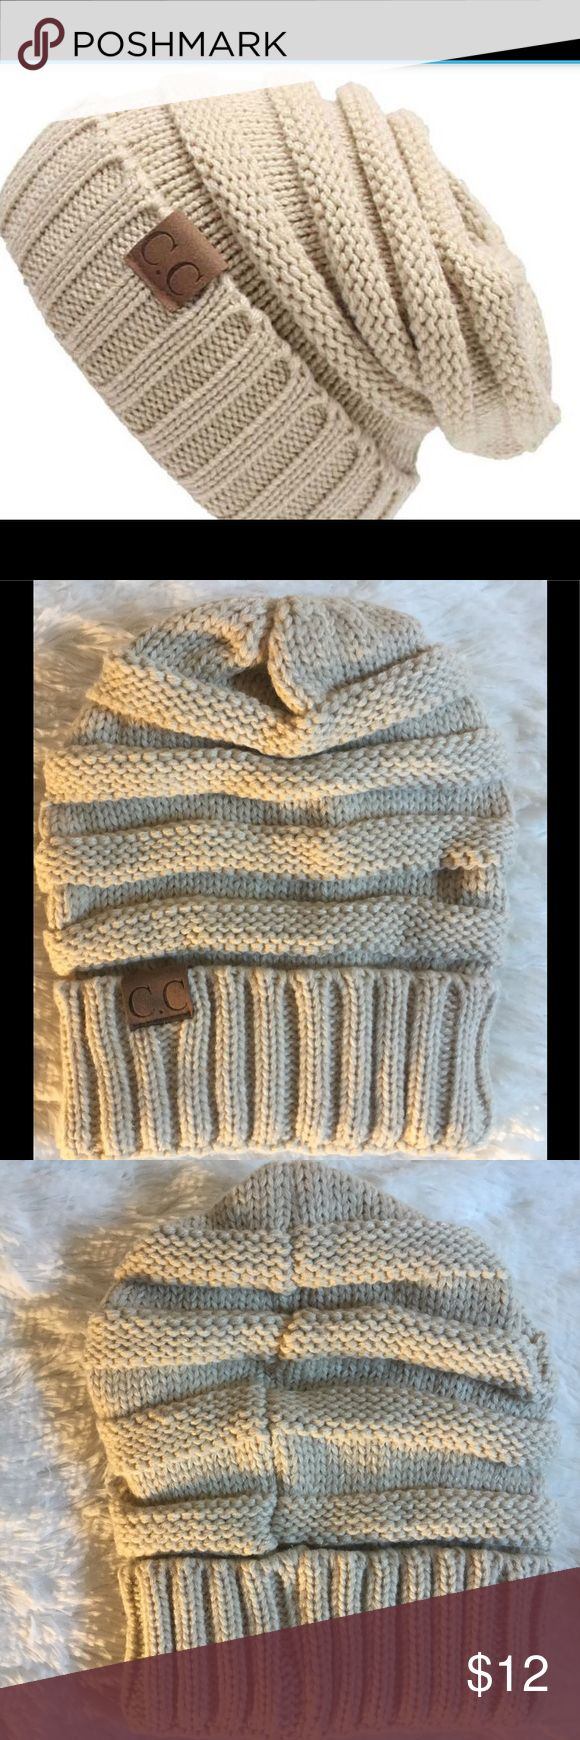 Knitted wool women's beanie hat brand new This stylish hat is brand new in package and comes from a smoke free home.  Would make an excellent gift  .  Buy with confidence I am a top rated seller, mentor and fast shipper.  Don't forget to bundle and save.  Thank you. Accessories Hats